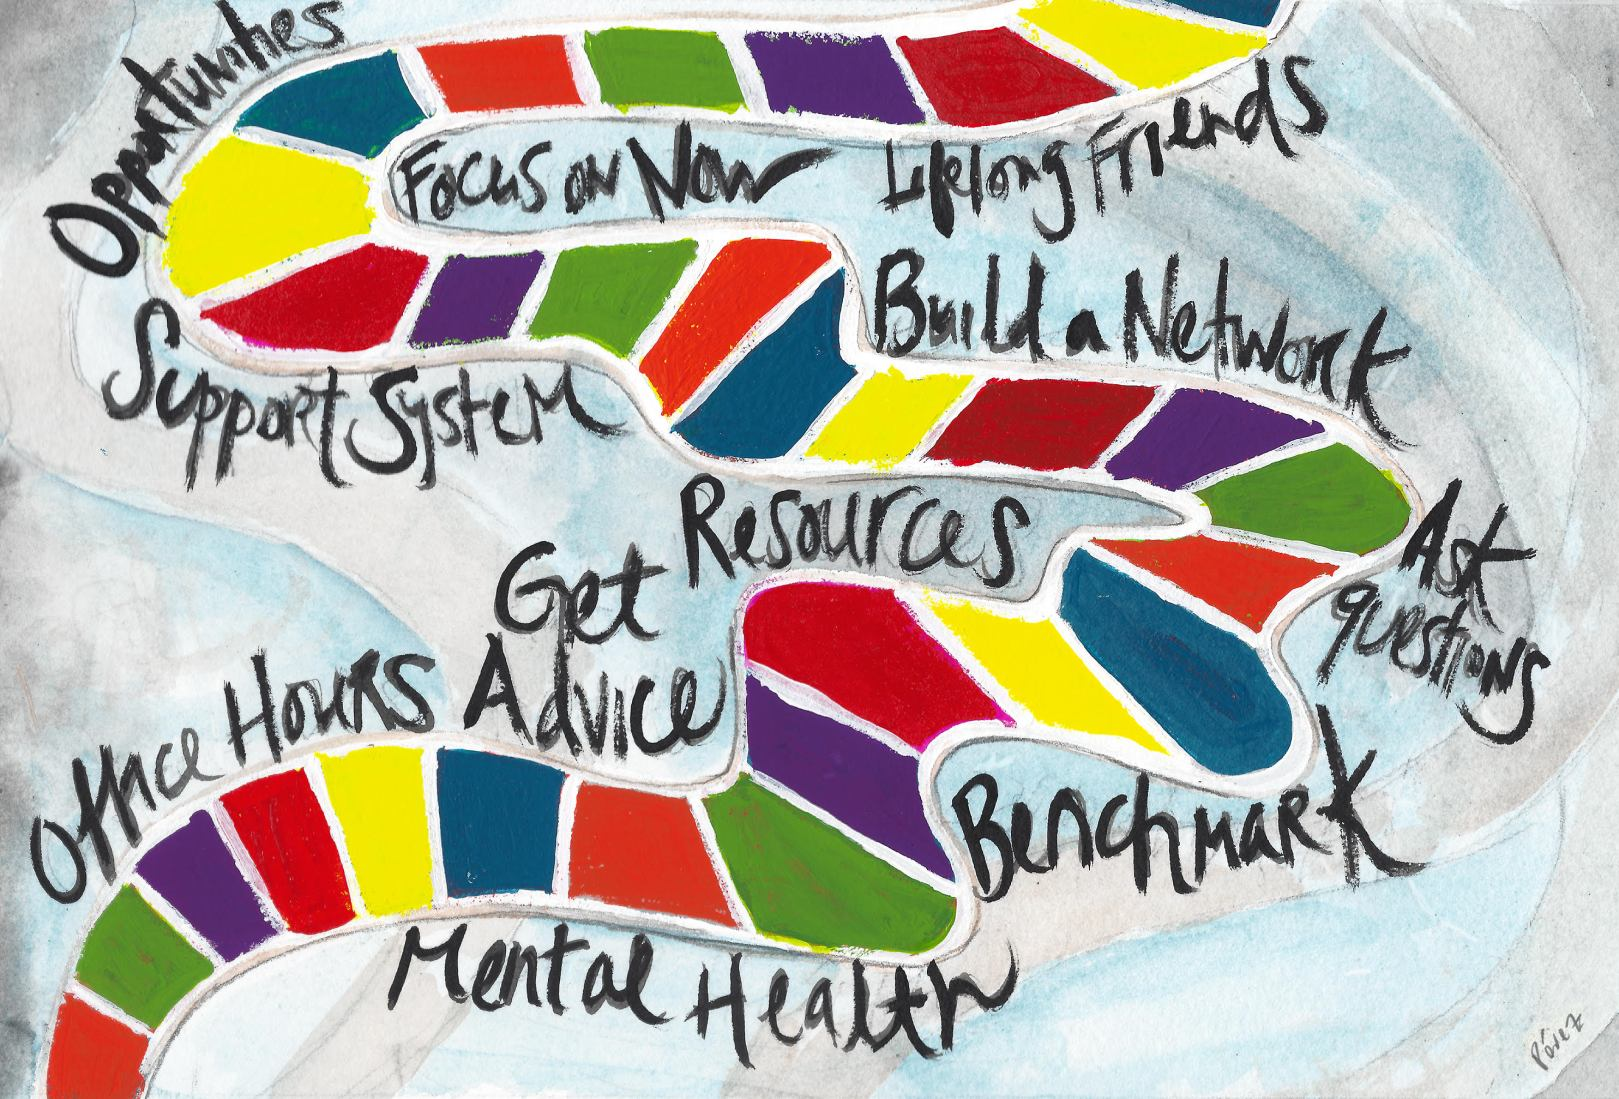 An illustration of a colorful board-game path winding through various words and phrases like mental health, build a network, get advice.